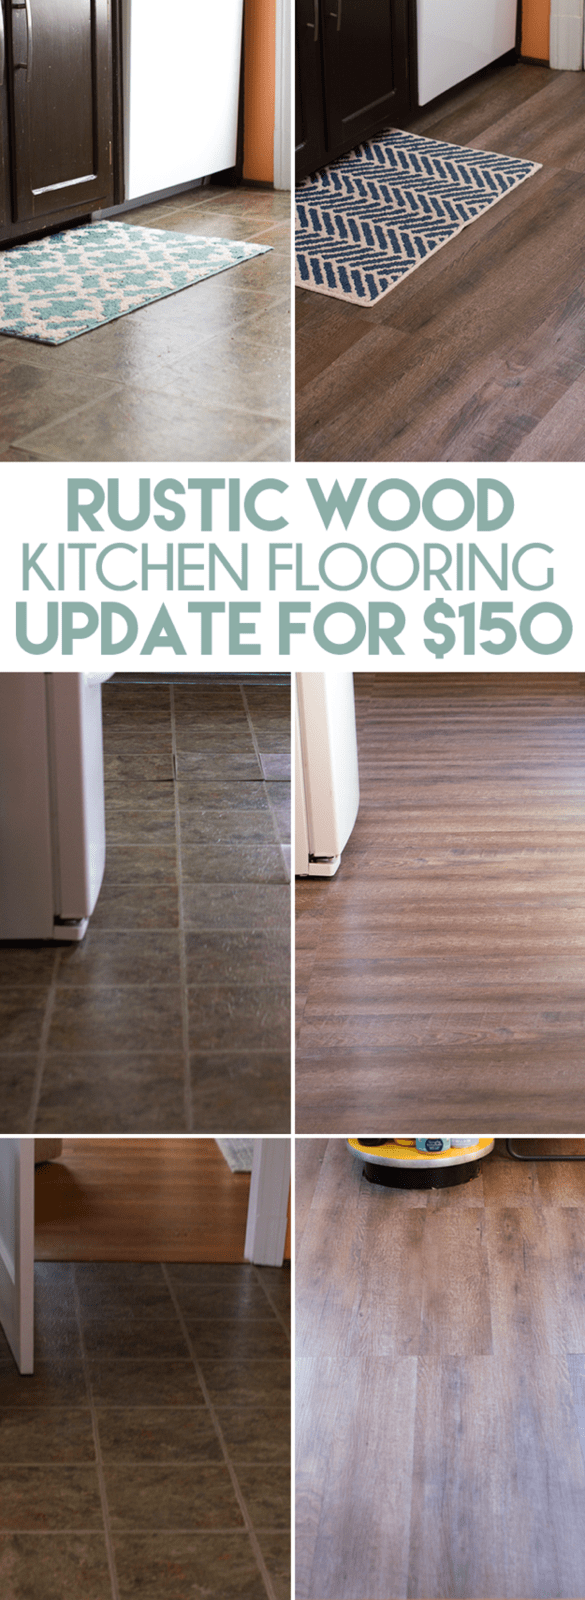 Rustic Kitchen Flooring Inexpensive Rustic Wood Kitchen Floors